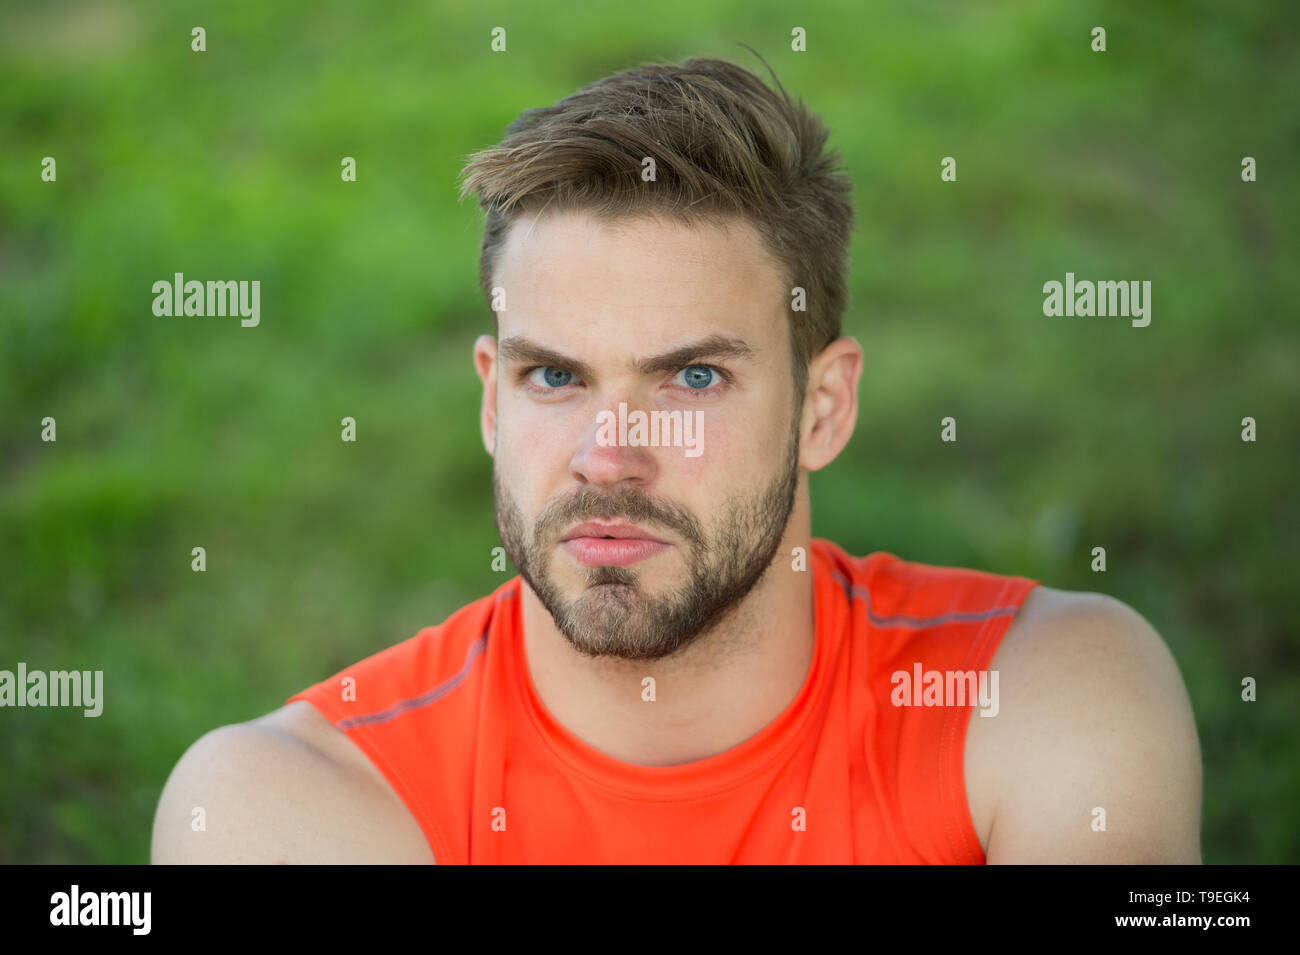 Taking minute break. Runner relaxing in shadow. Man with bristle strict face, grass background. Man unshaven looks handsome and cool. Guy bearded and  - Stock Image